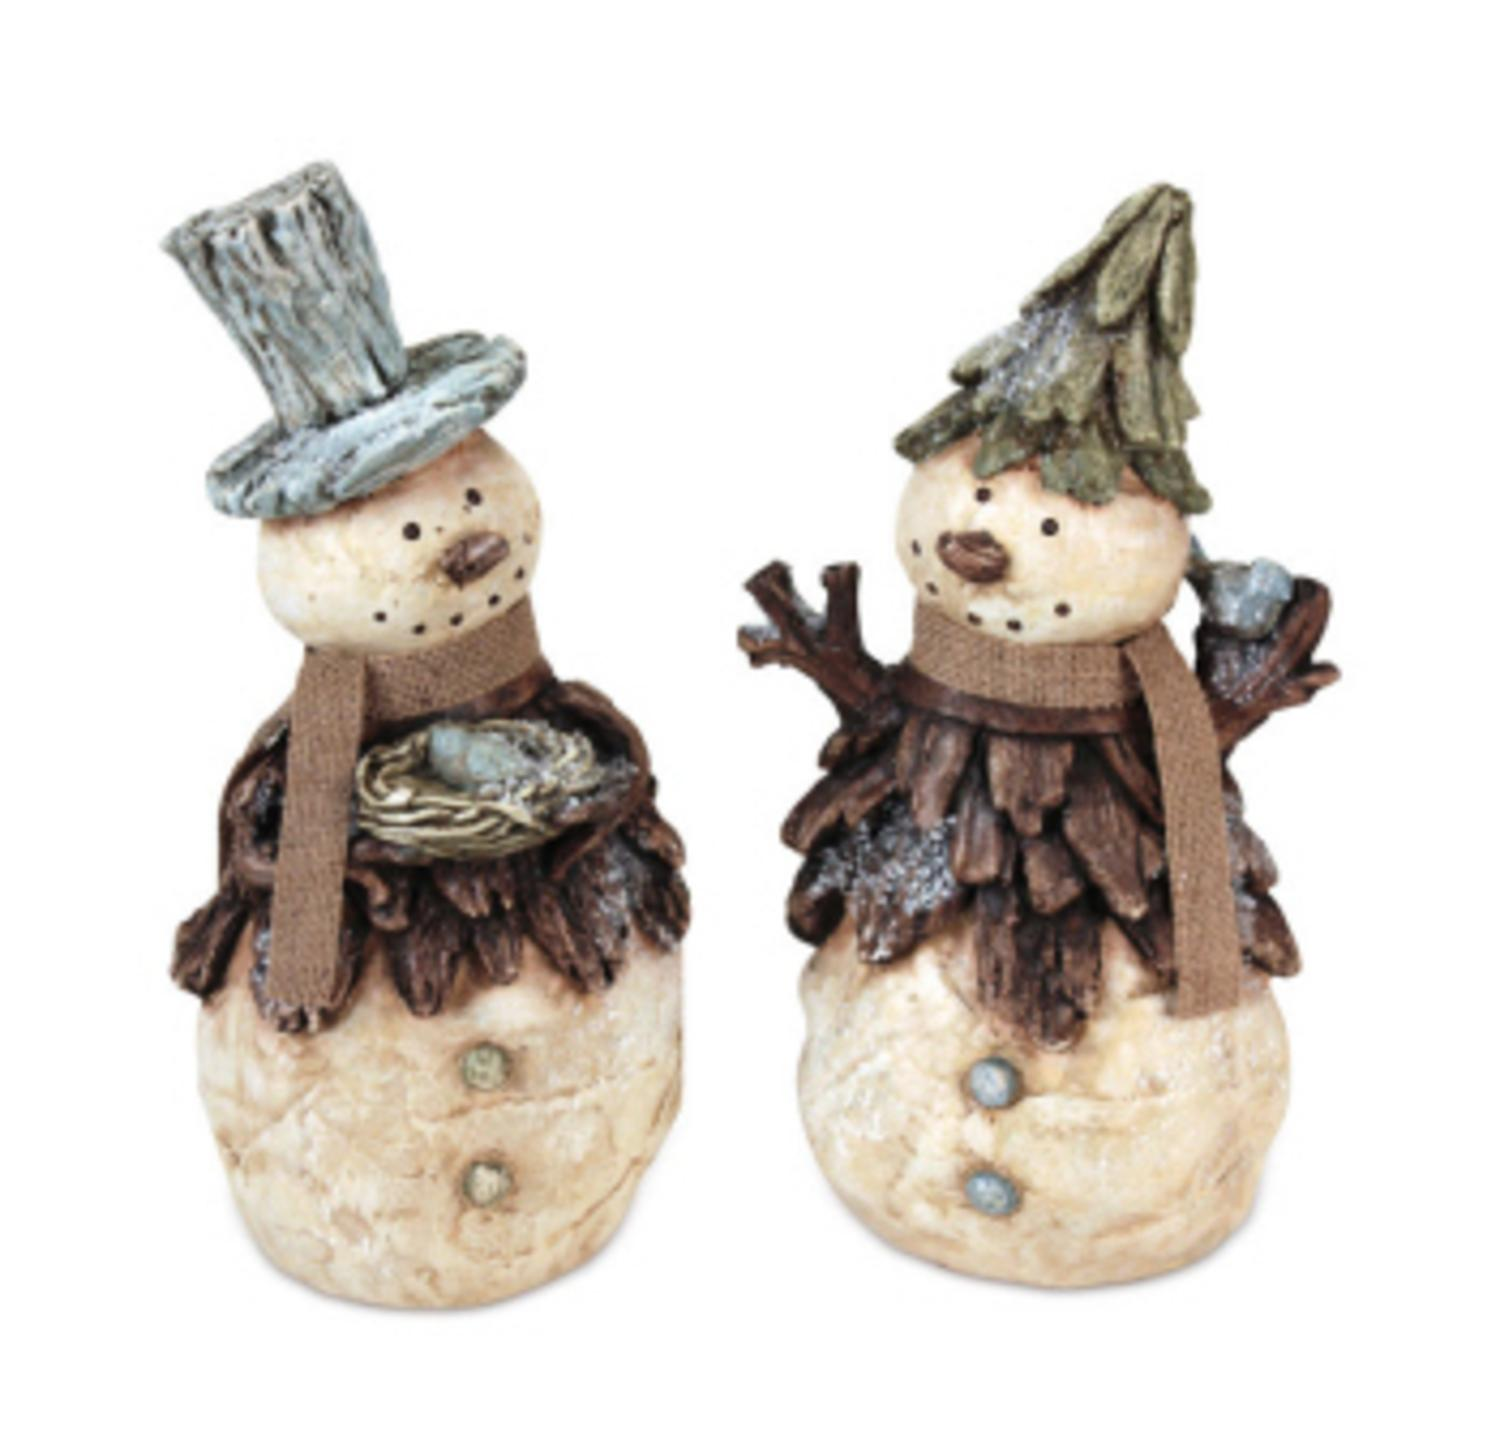 Pack of 4 Natural Fiber Folk Art Snowman Table Top Tree Christmas Figurines 13""